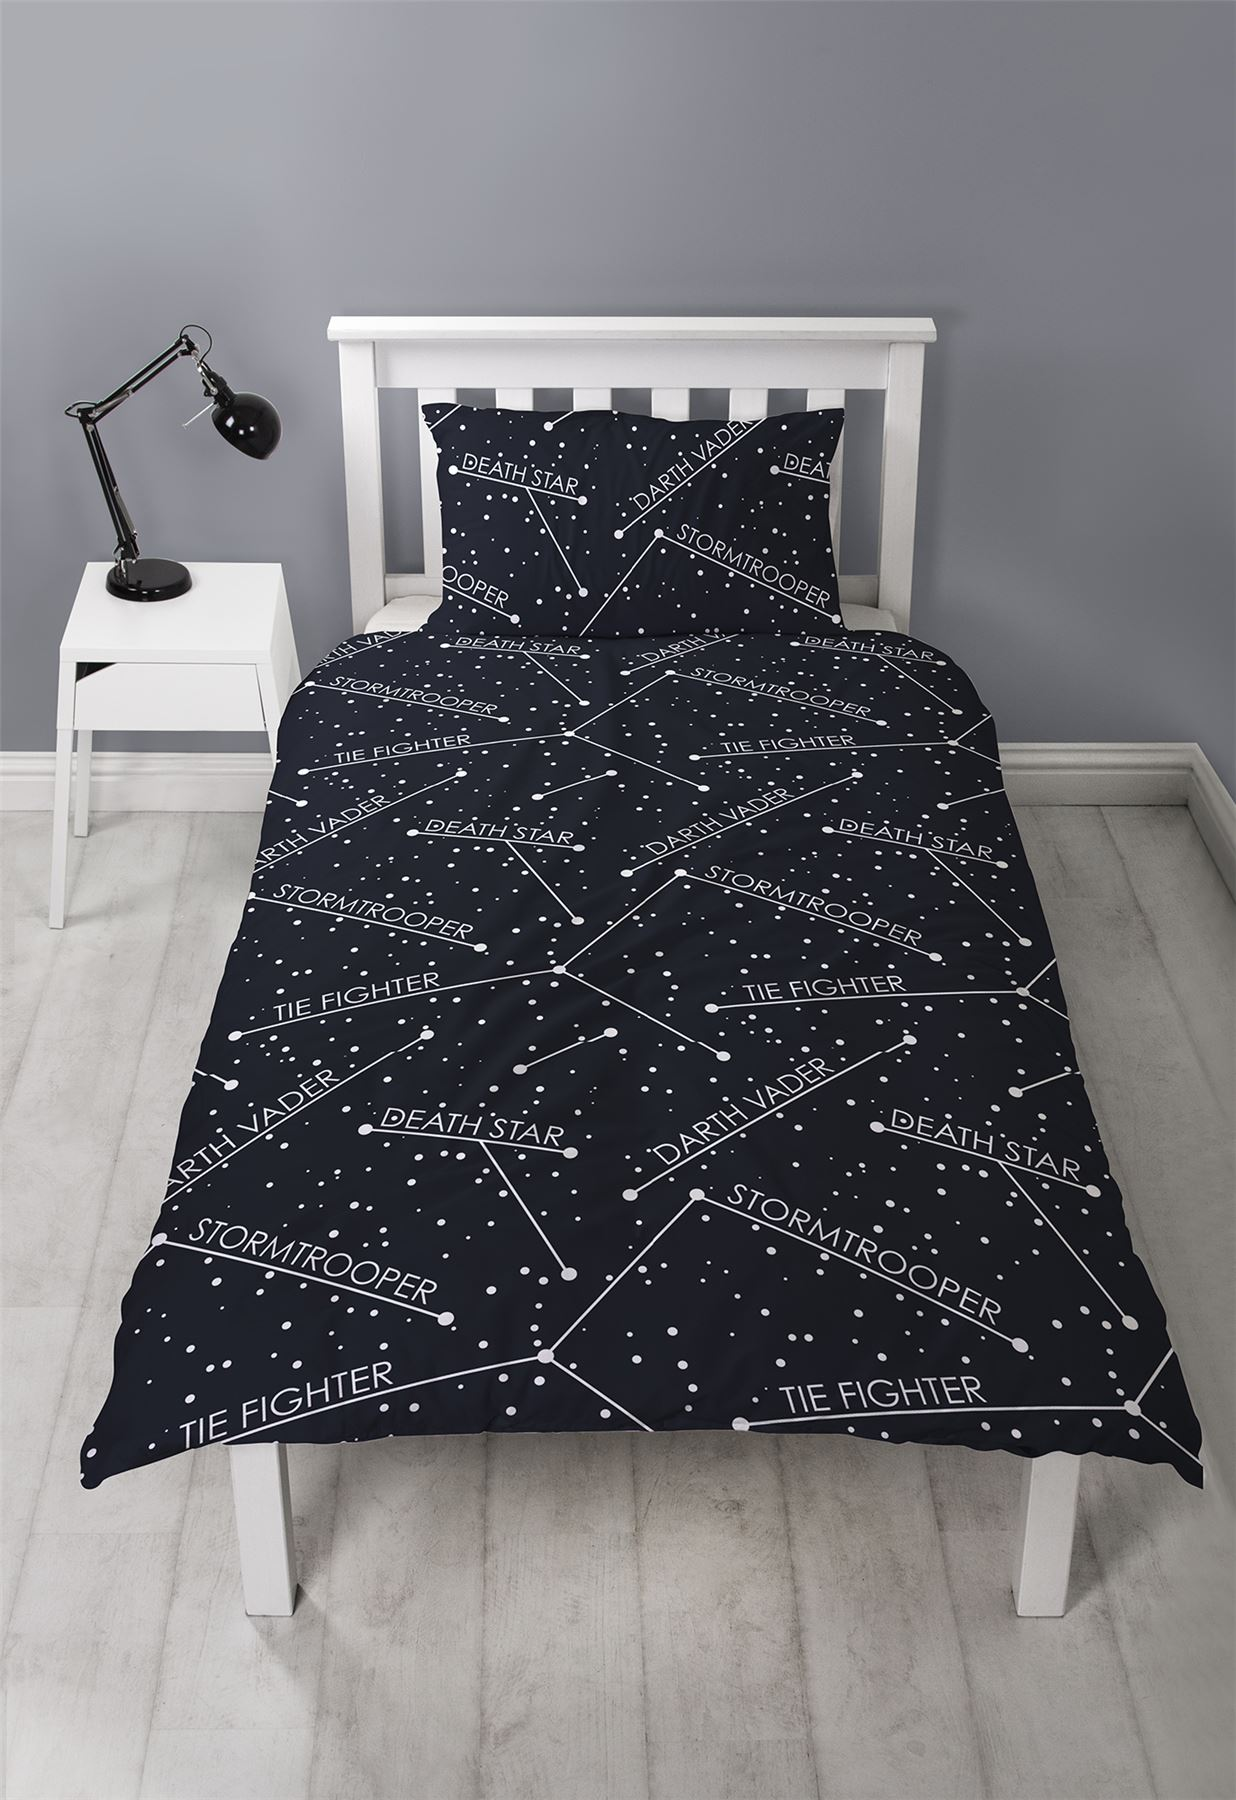 Official-Star-Wars-Licensed-Duvet-Covers-Single-Double-Jedi-Darth-Vader-Lego thumbnail 40